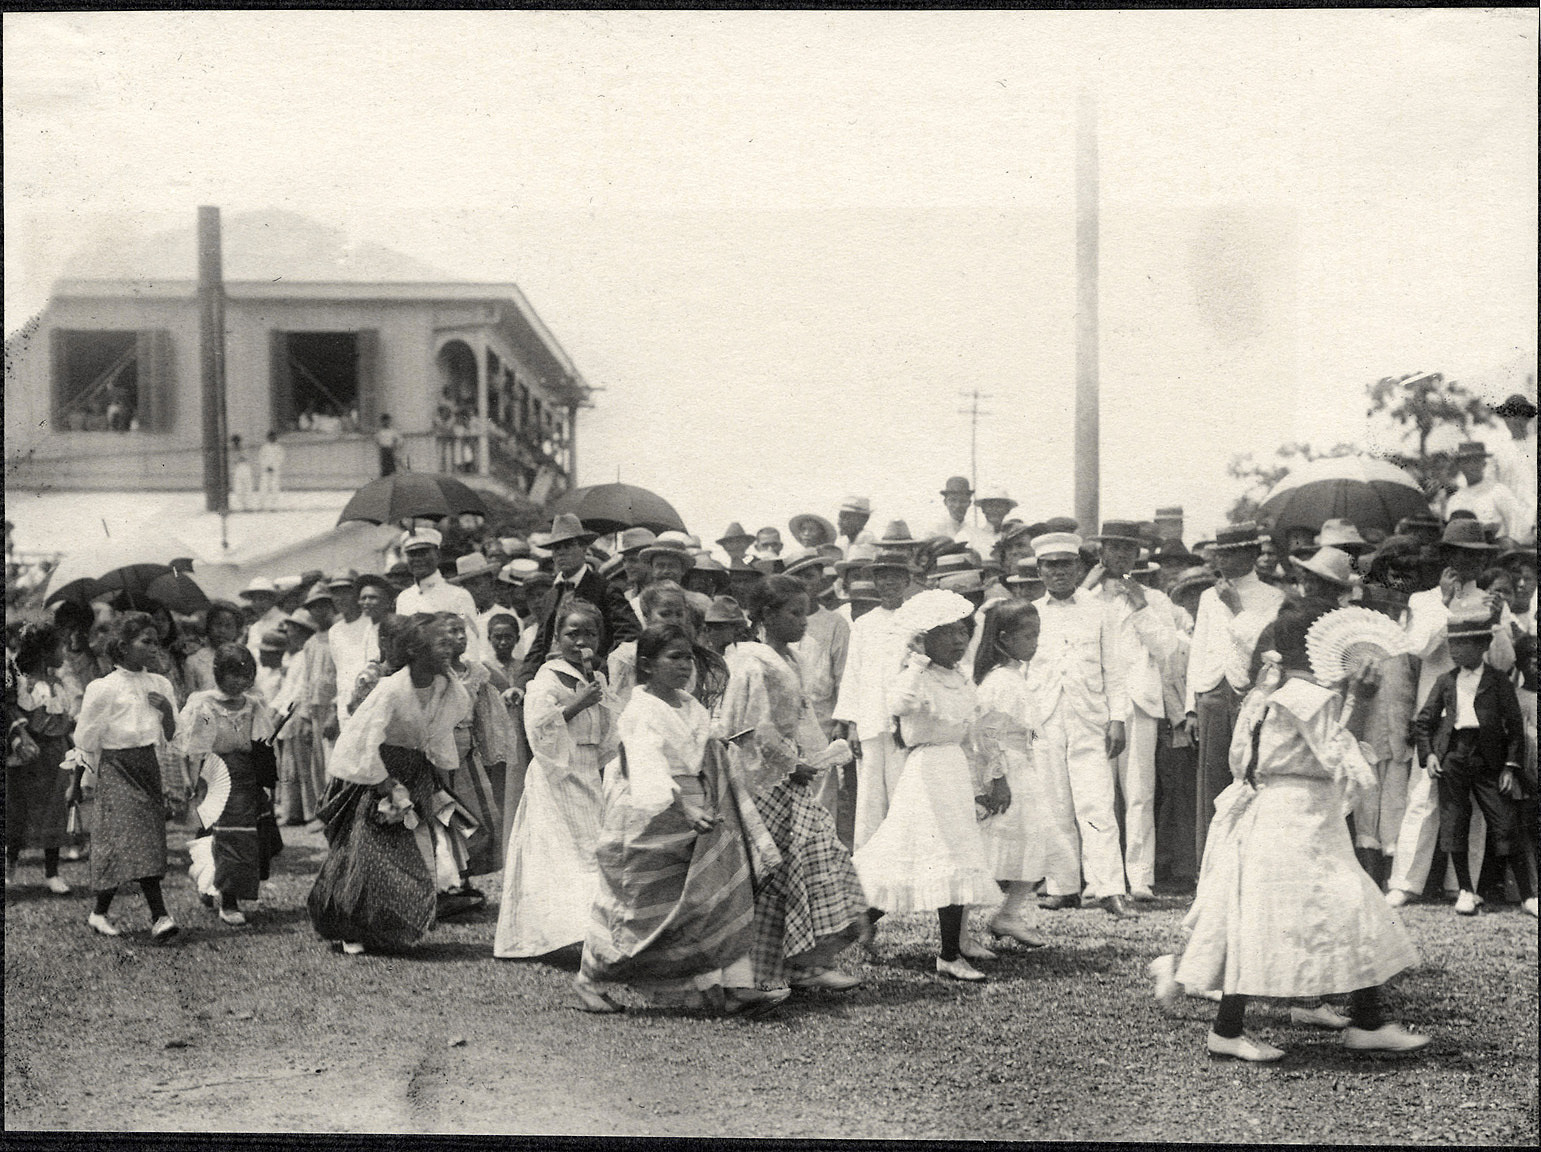 Iloilo City: Parade of young girls, possibly a school group